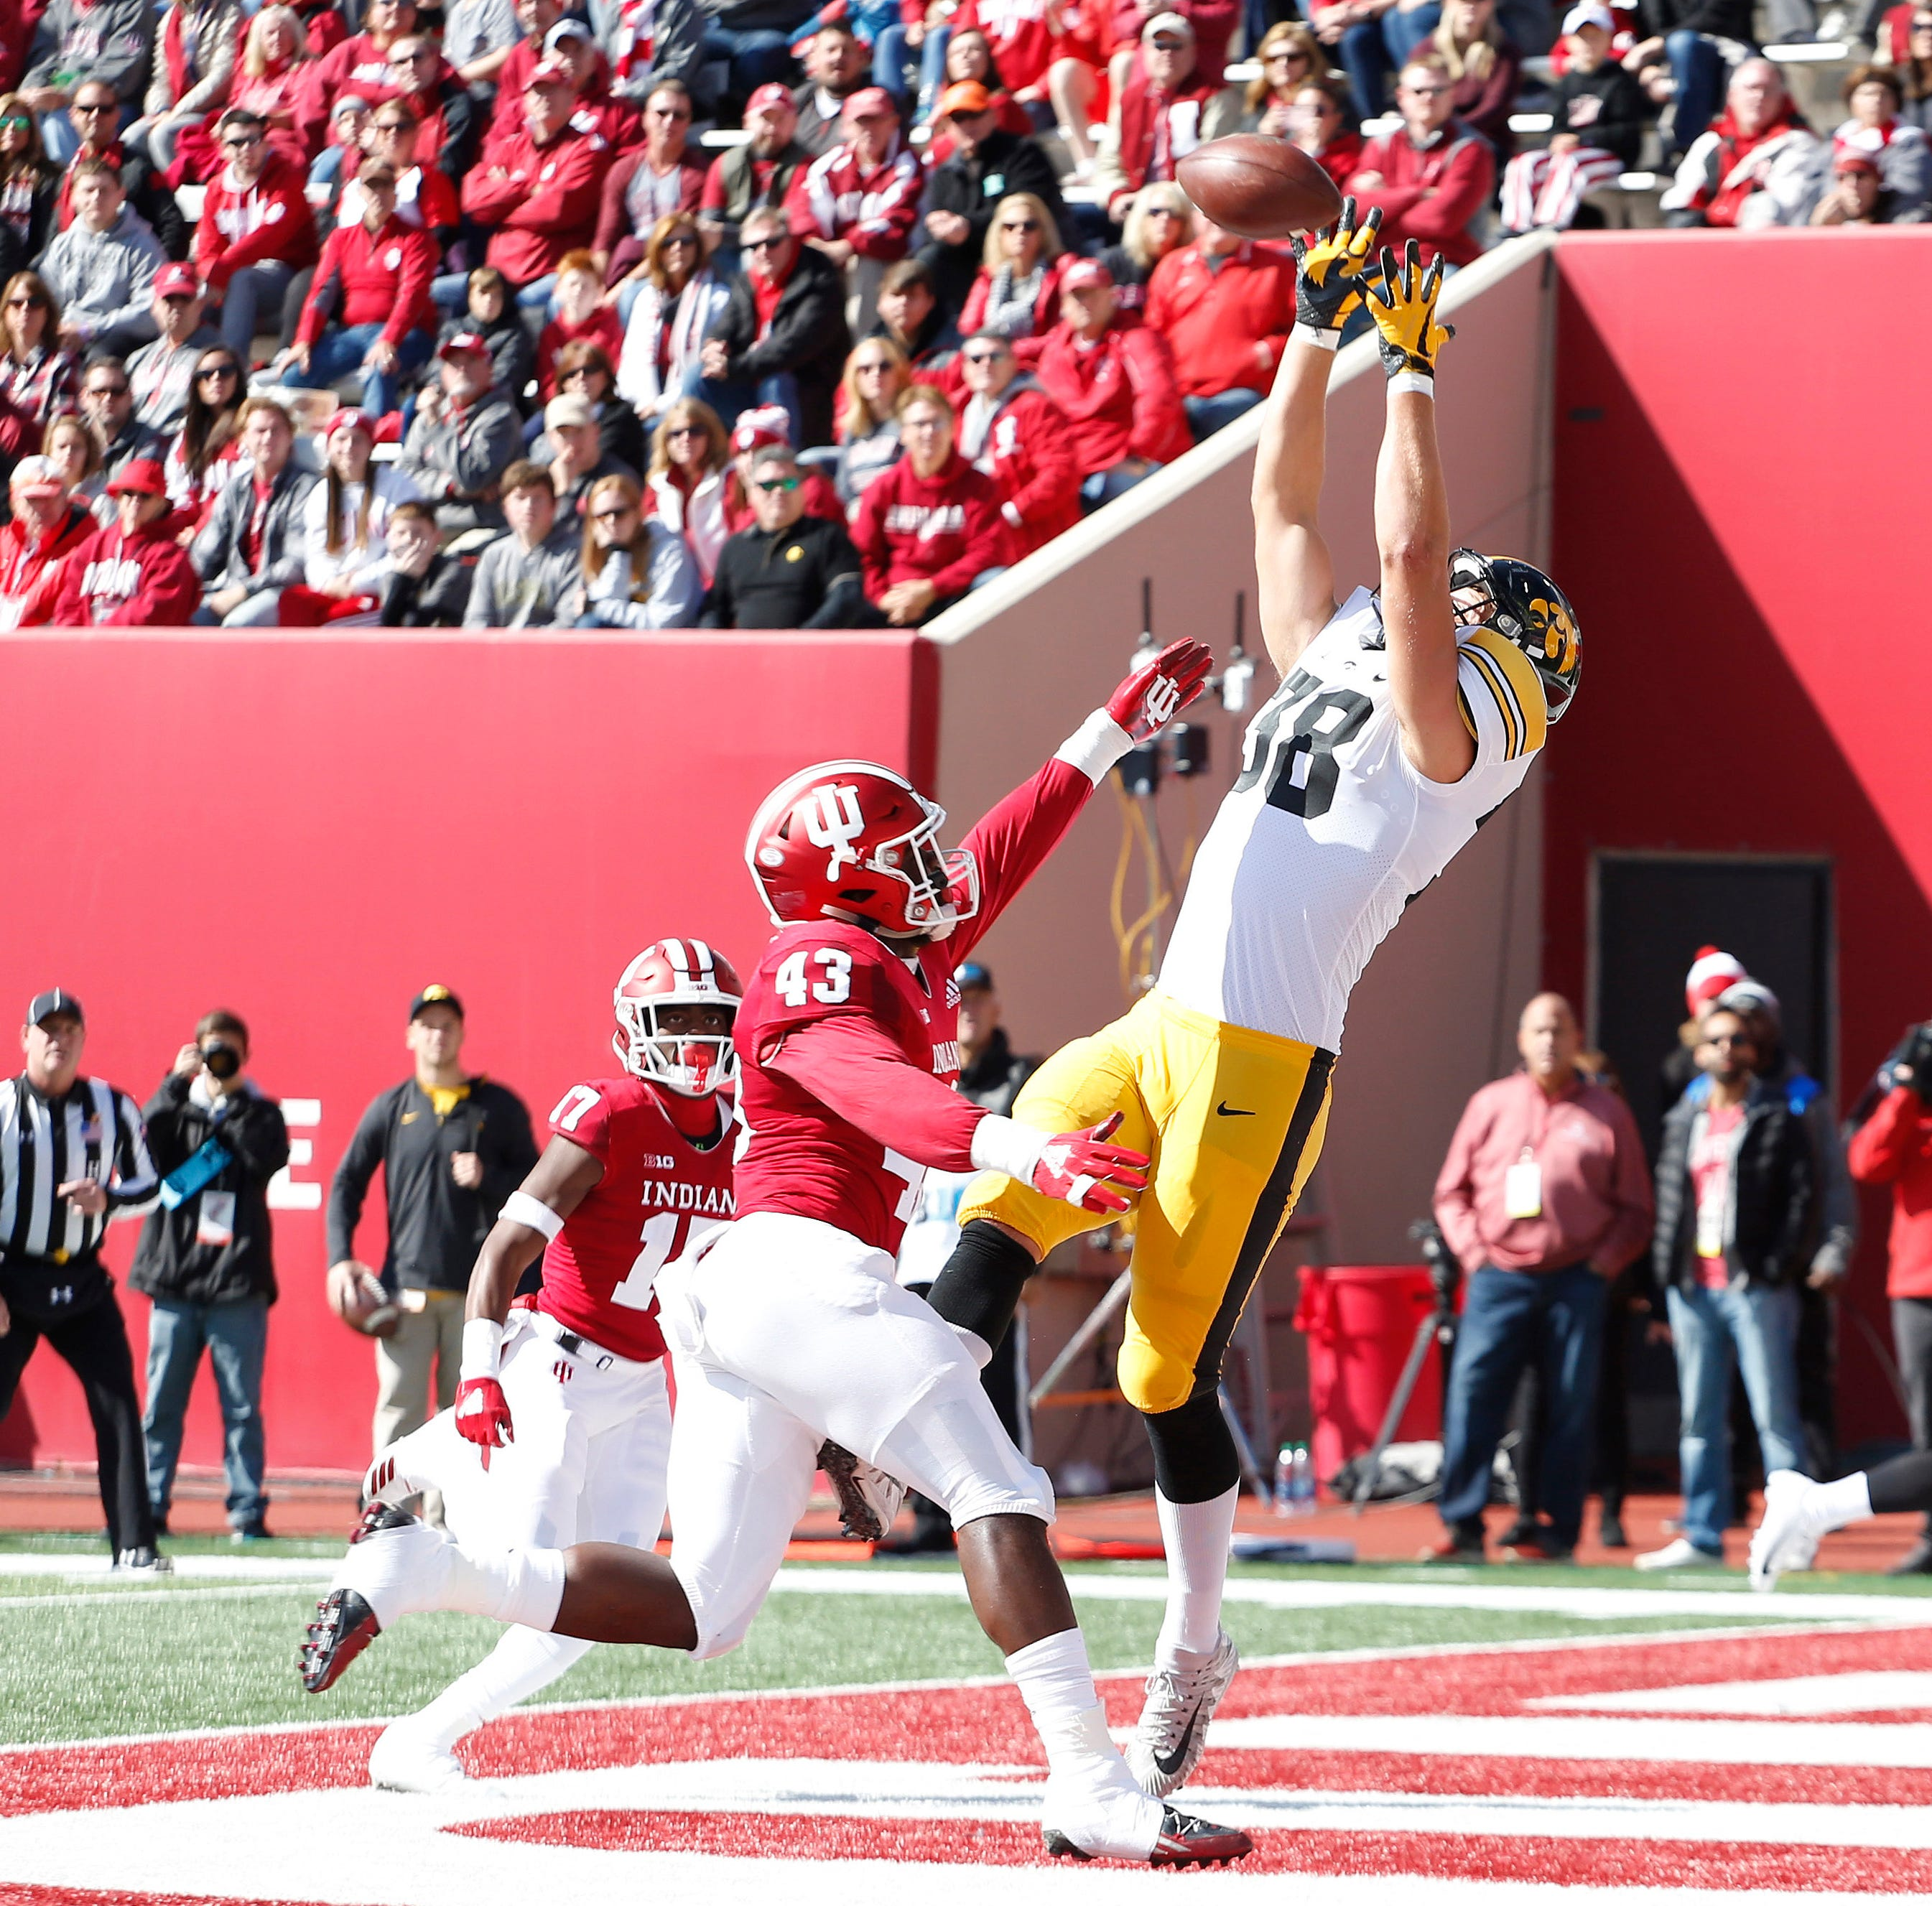 Hockenson showing star power of his own as Hawkeye tight end